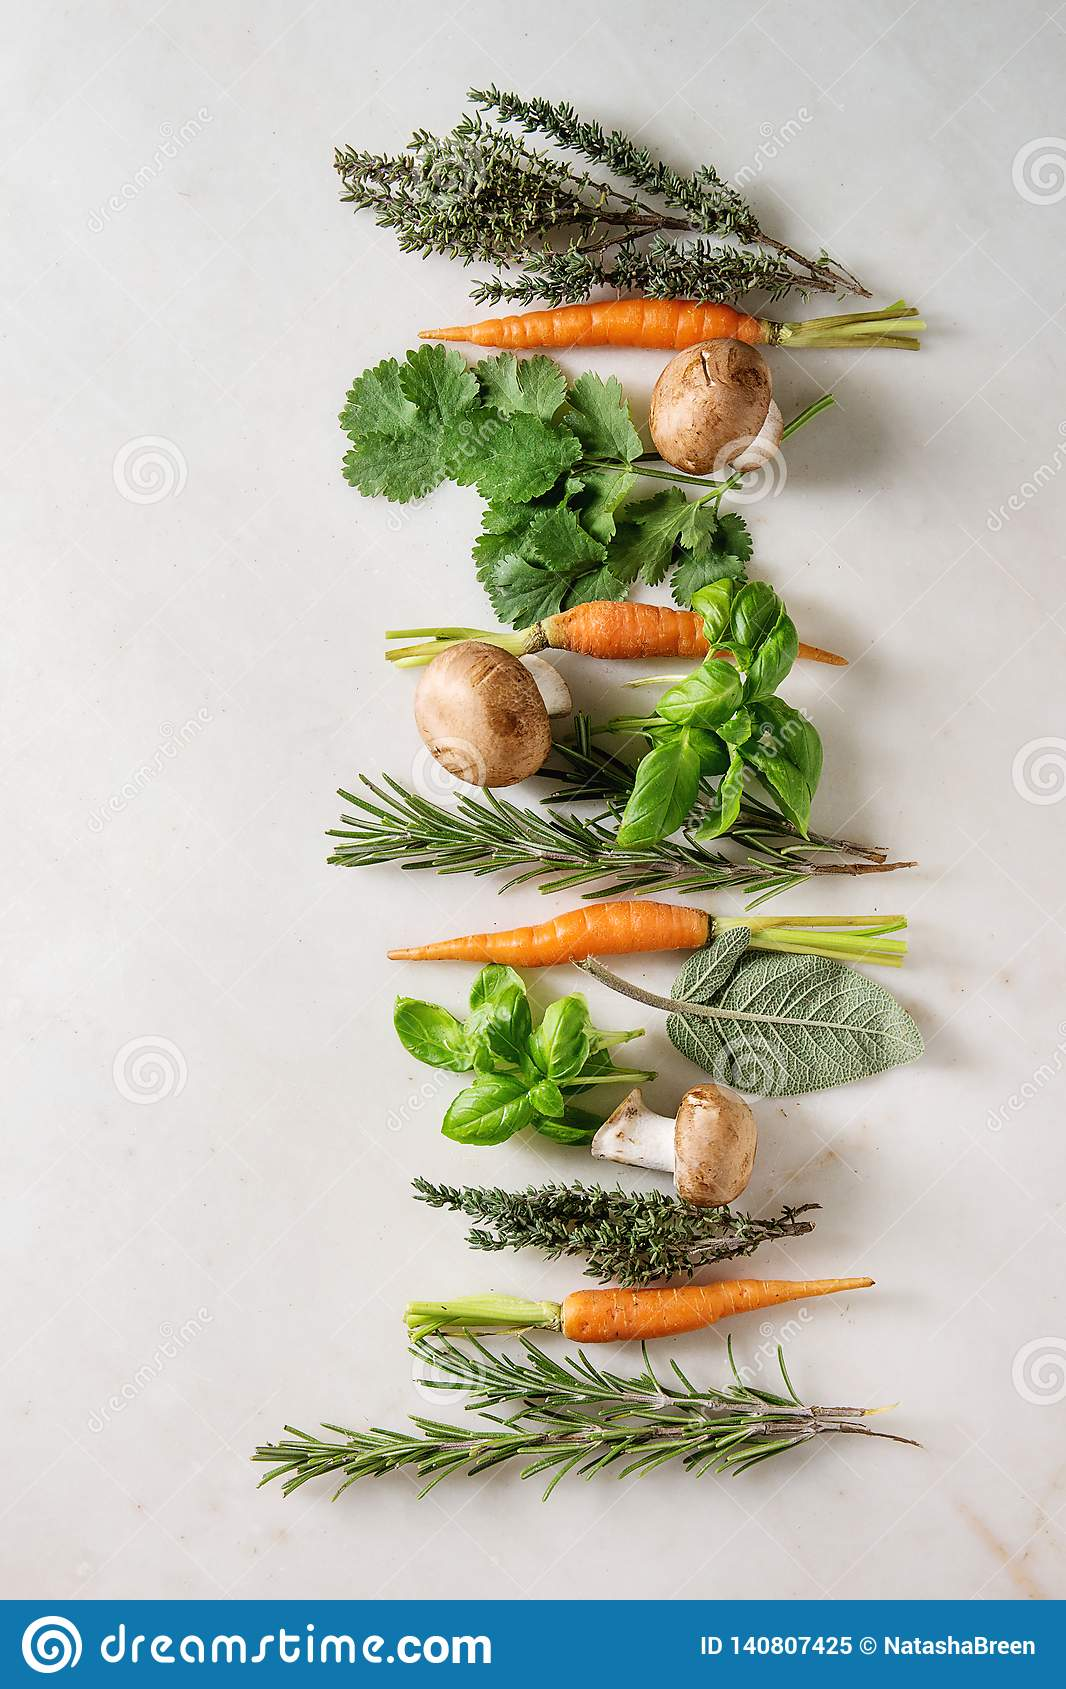 Kitchen herbs and carrots